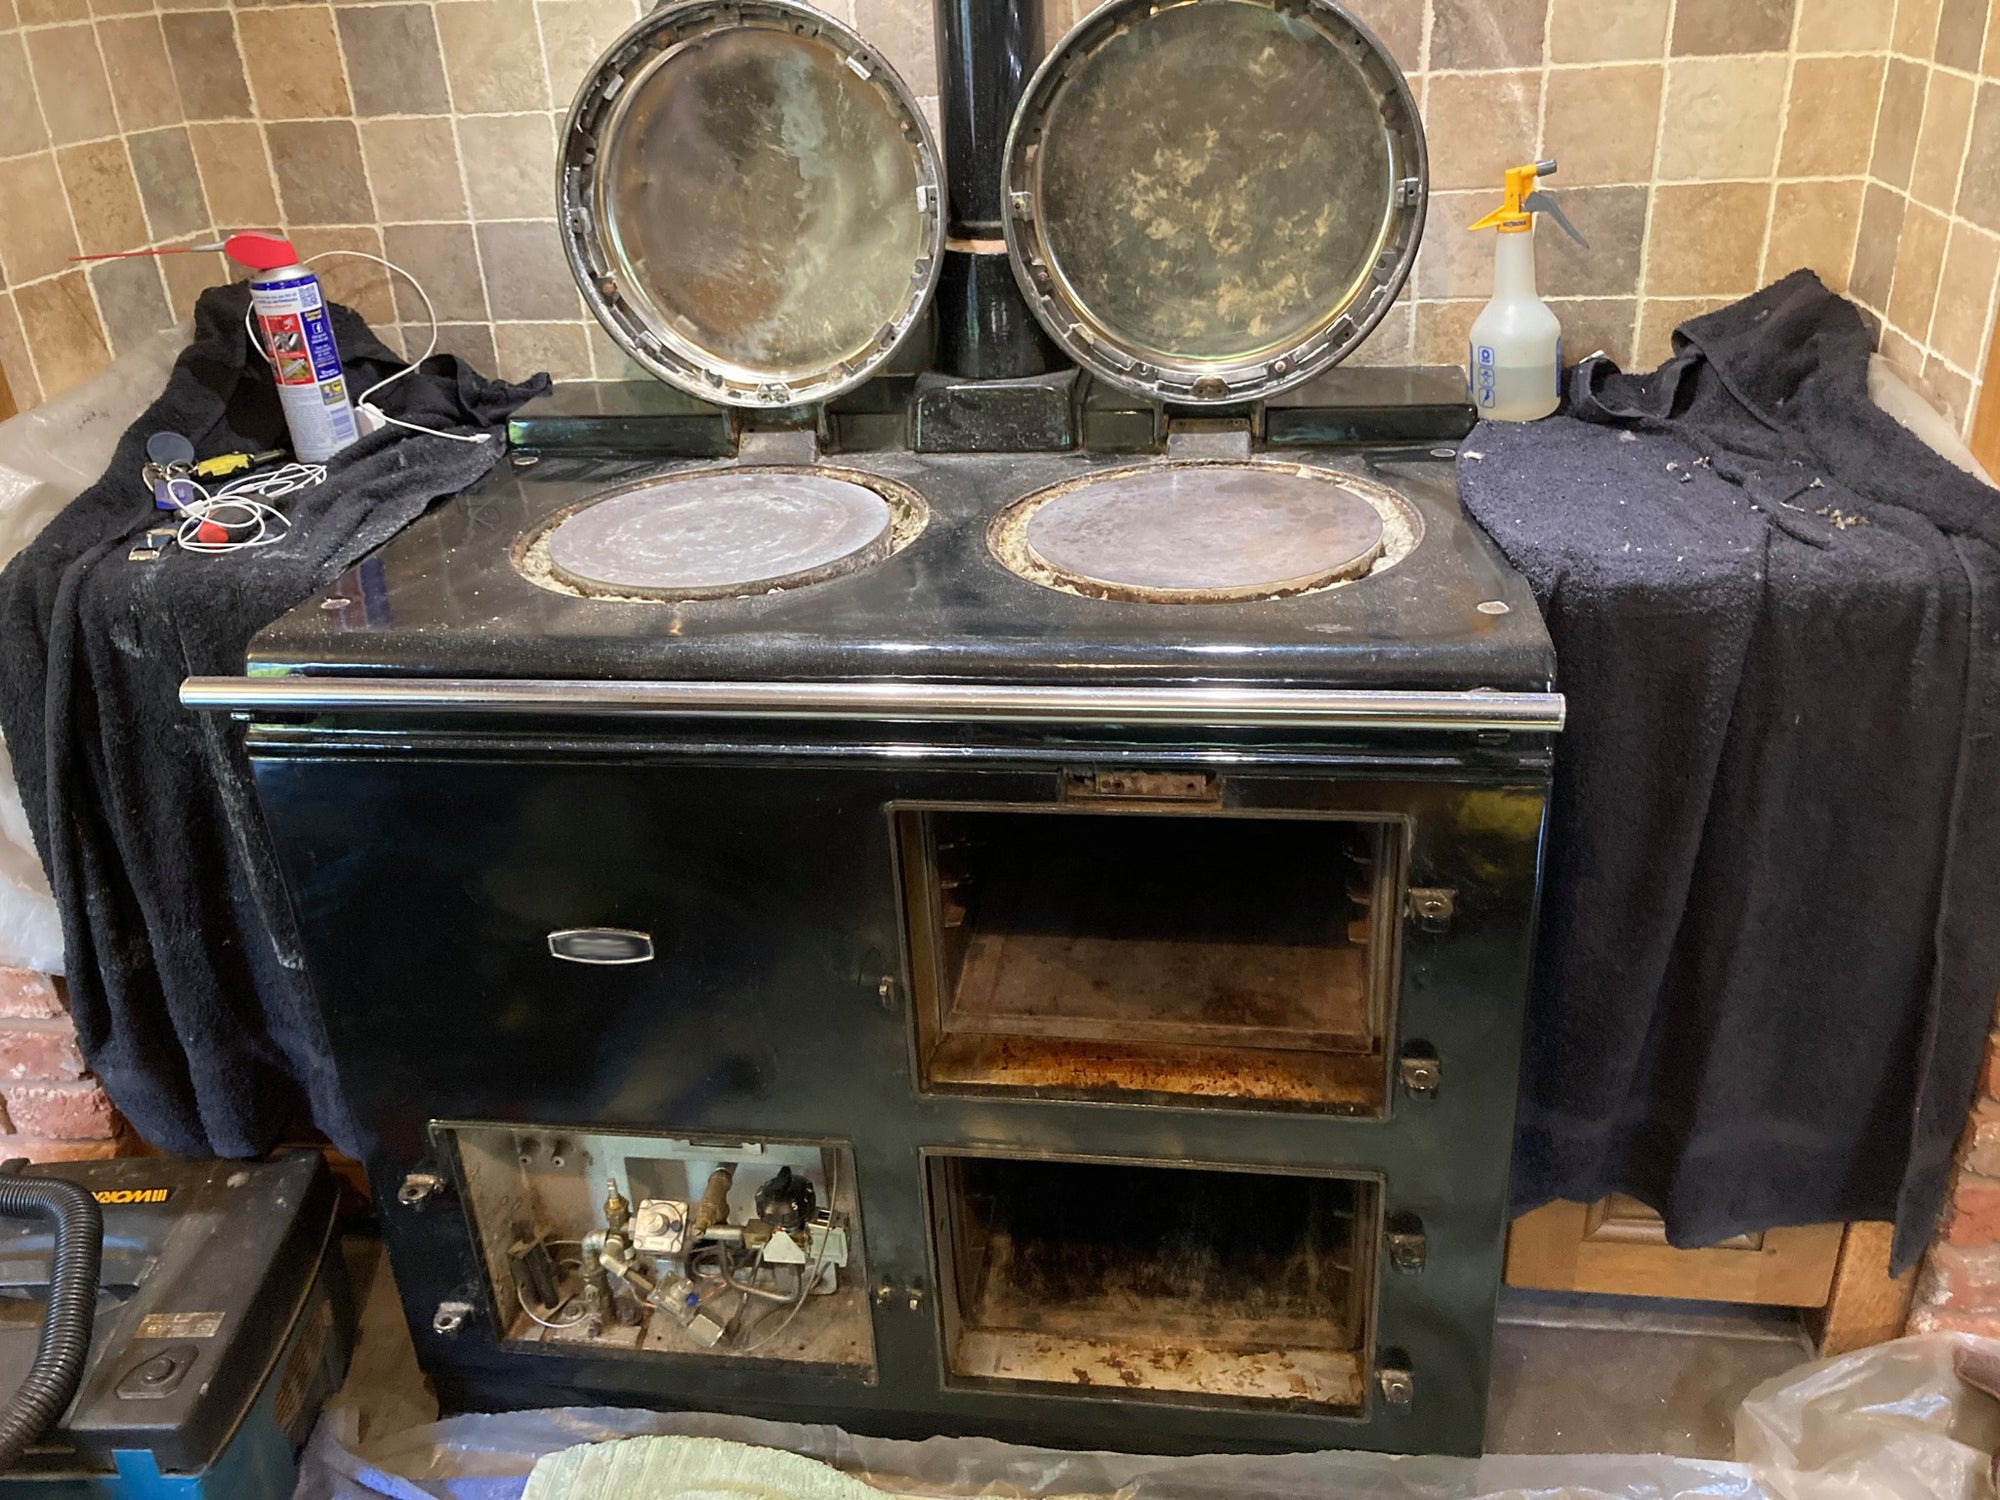 Black Aga range cooker after mini-refurb & deep clean